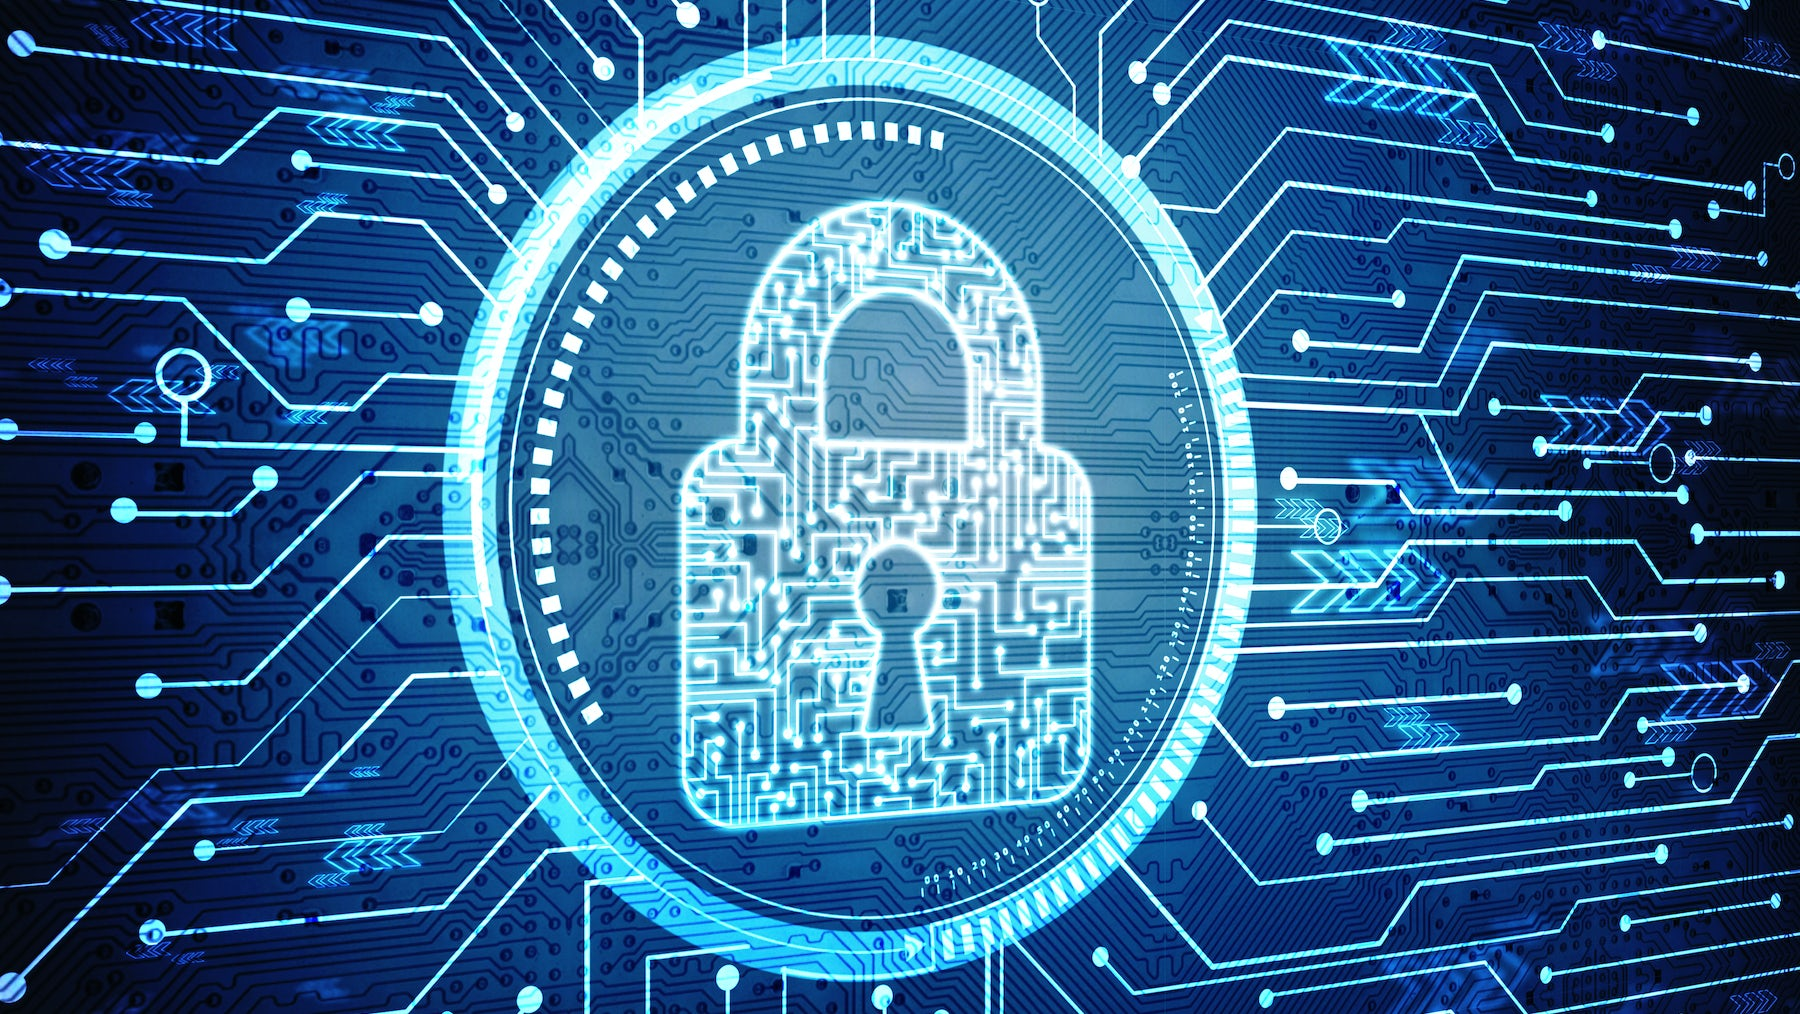 Cybersecurity | Source: Shutterstock